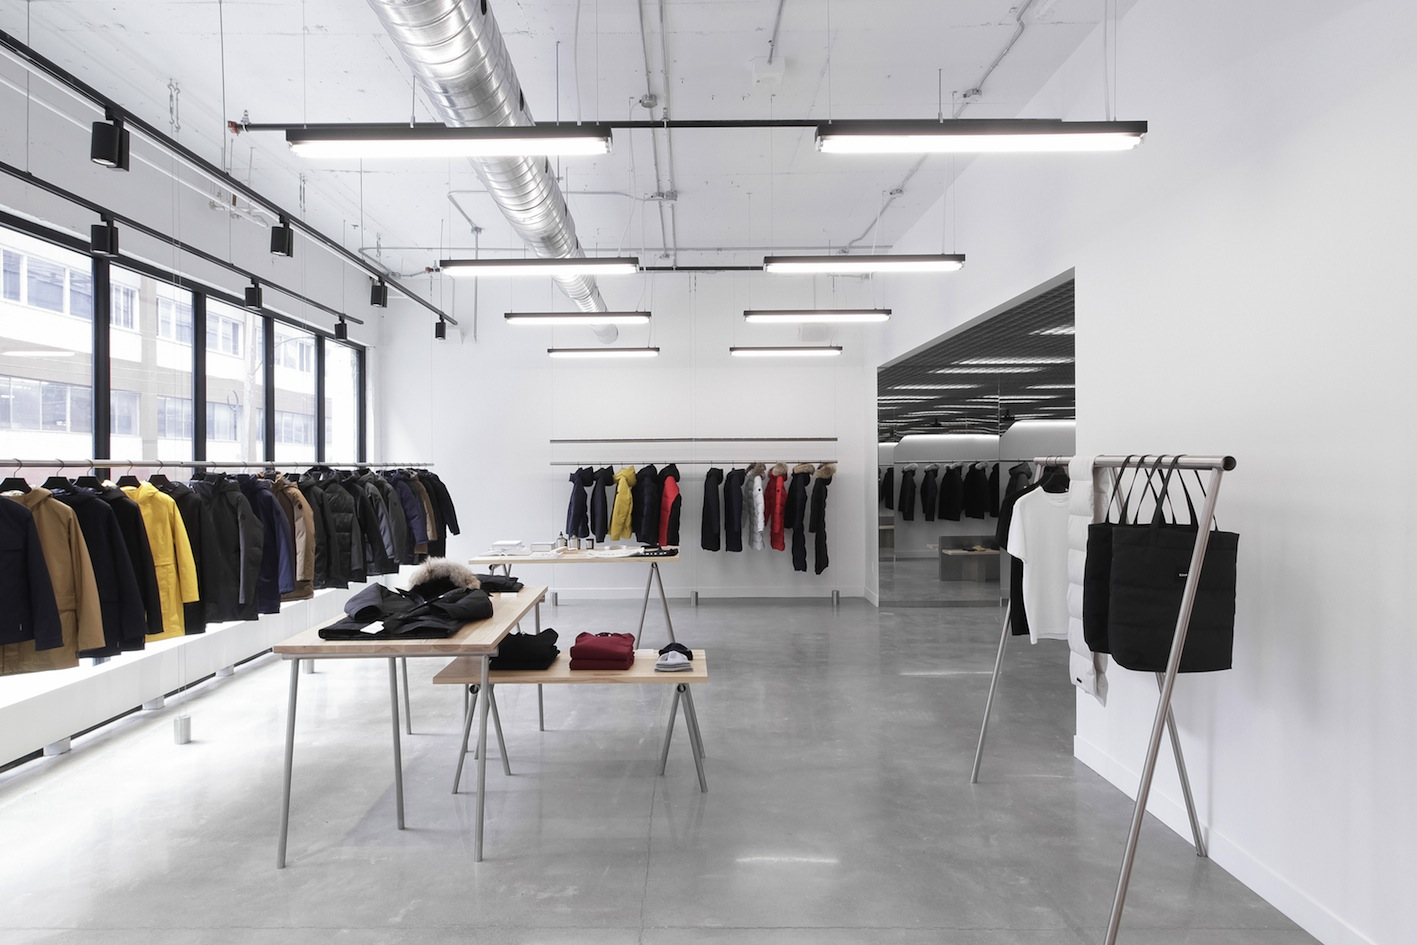 Quartz Co. opens first flagship store and launches Forward collection